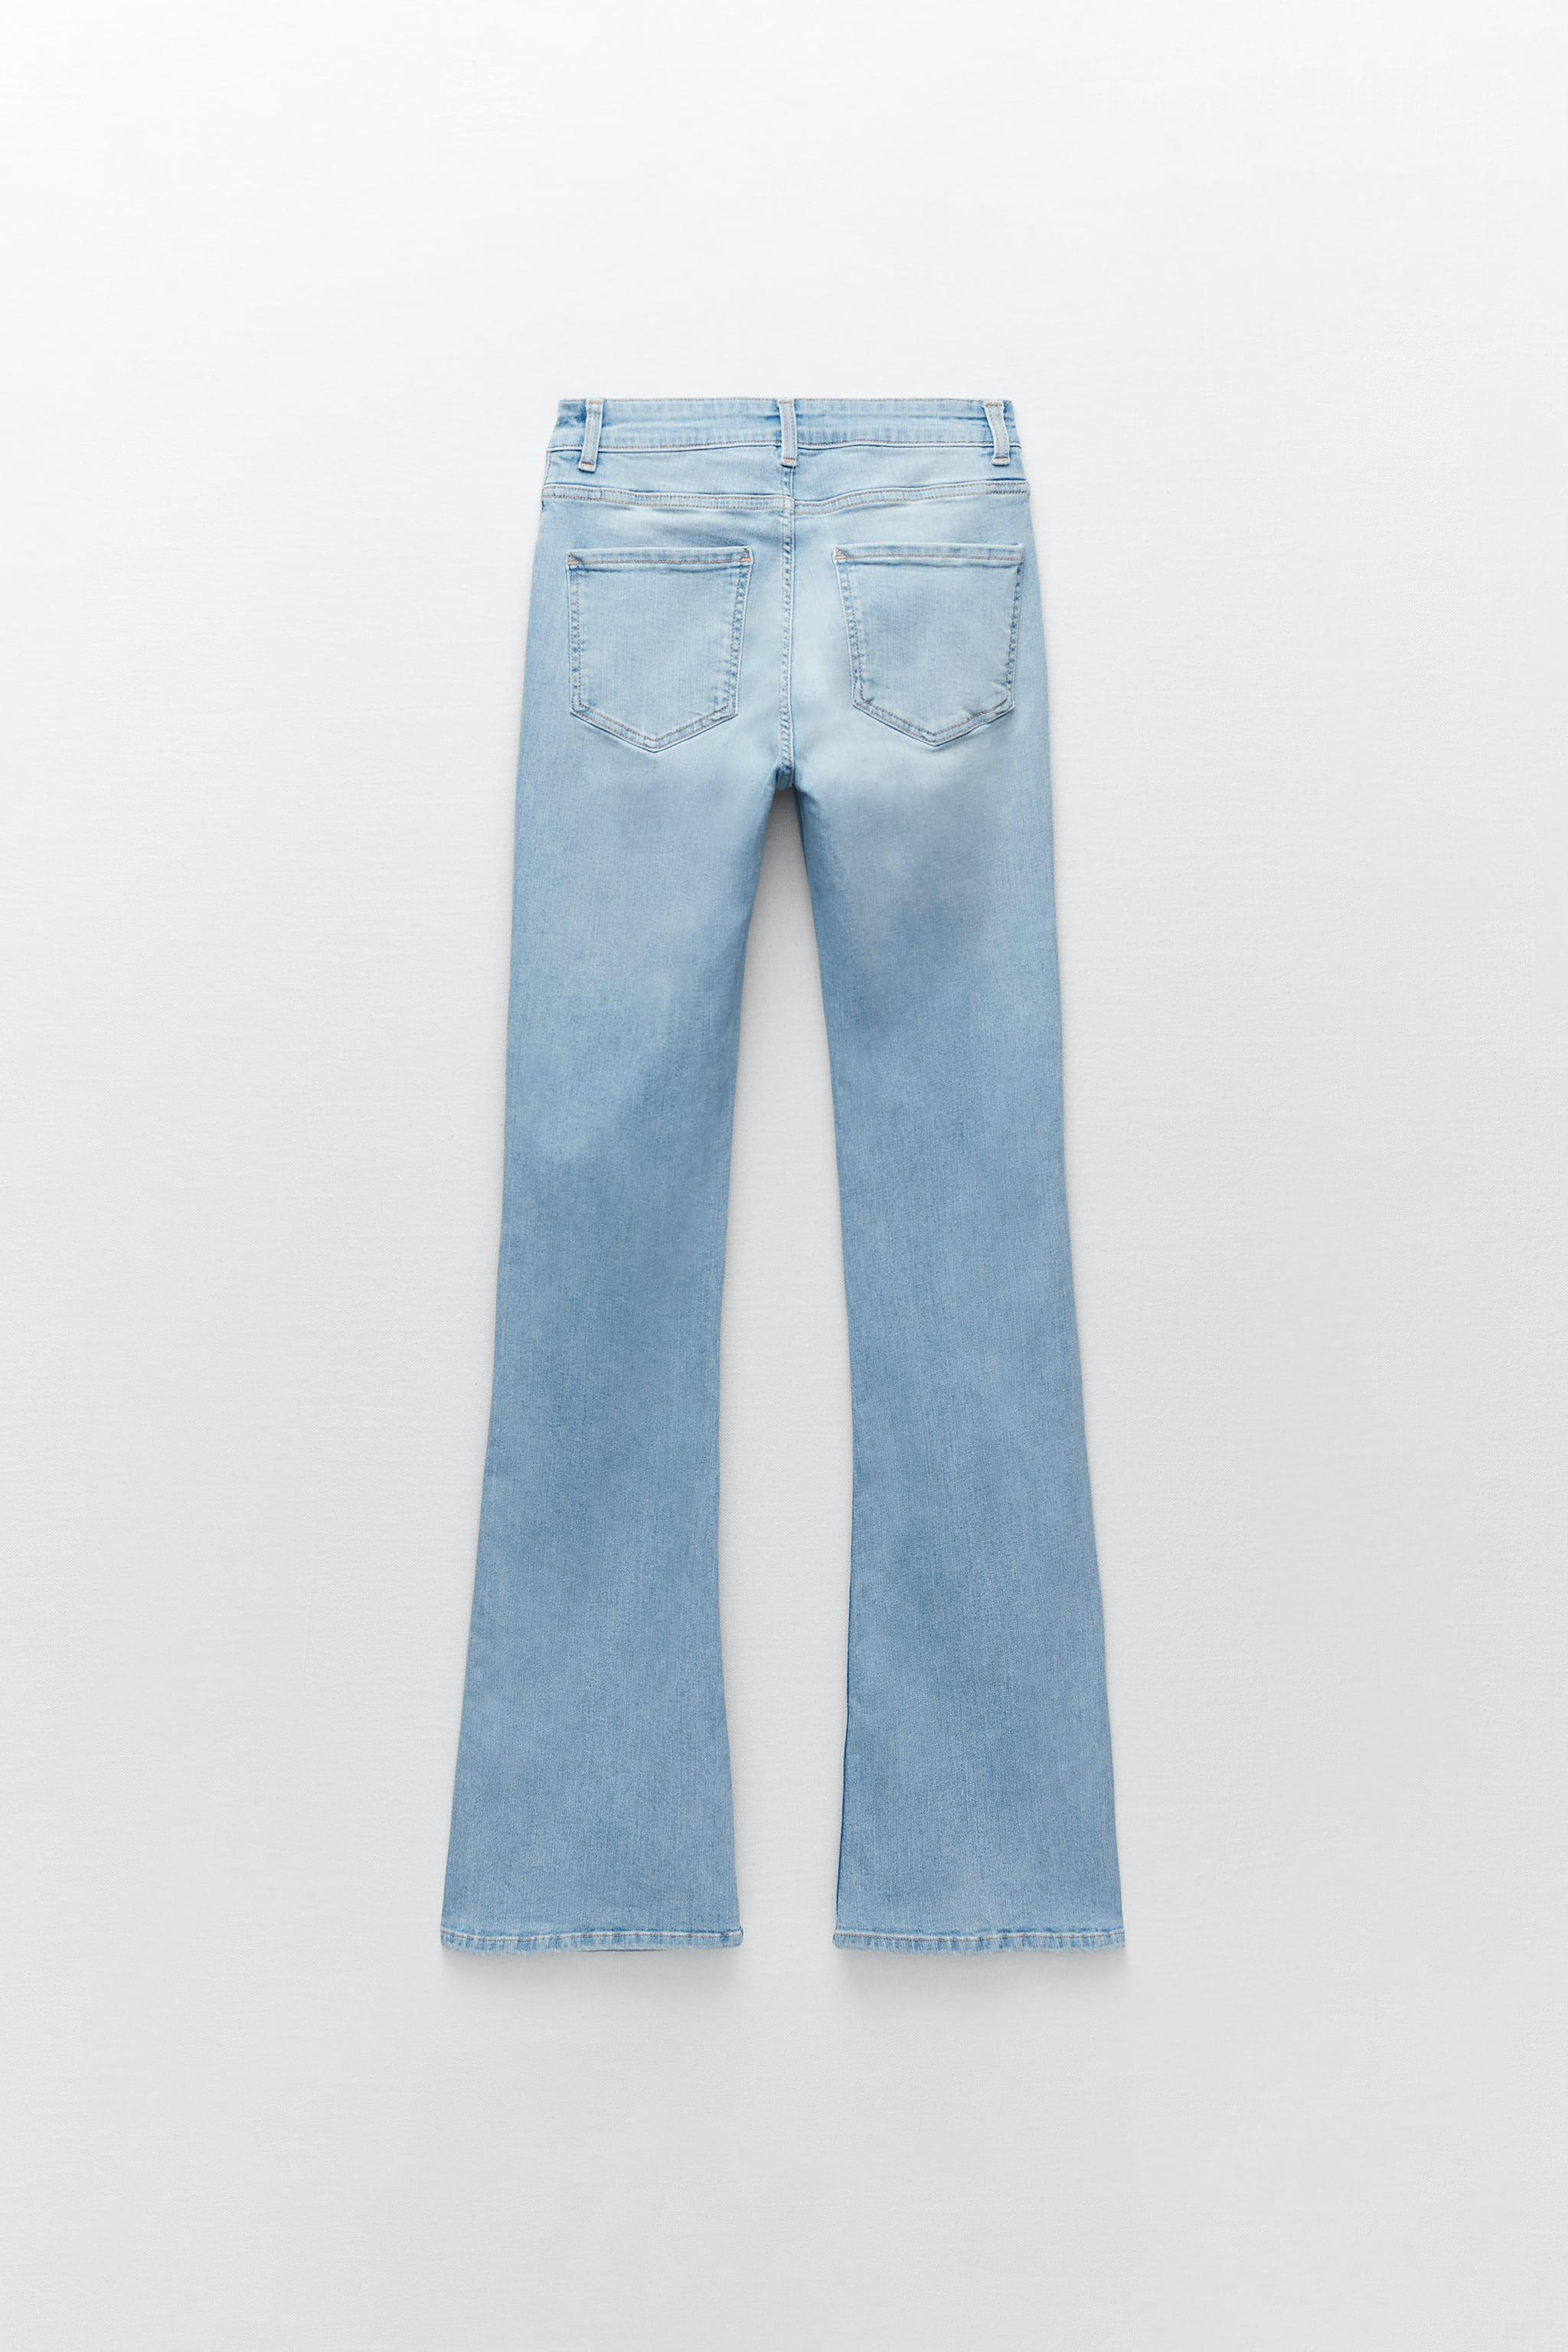 Z1975 HIGH RISE FLARED JEANS 4